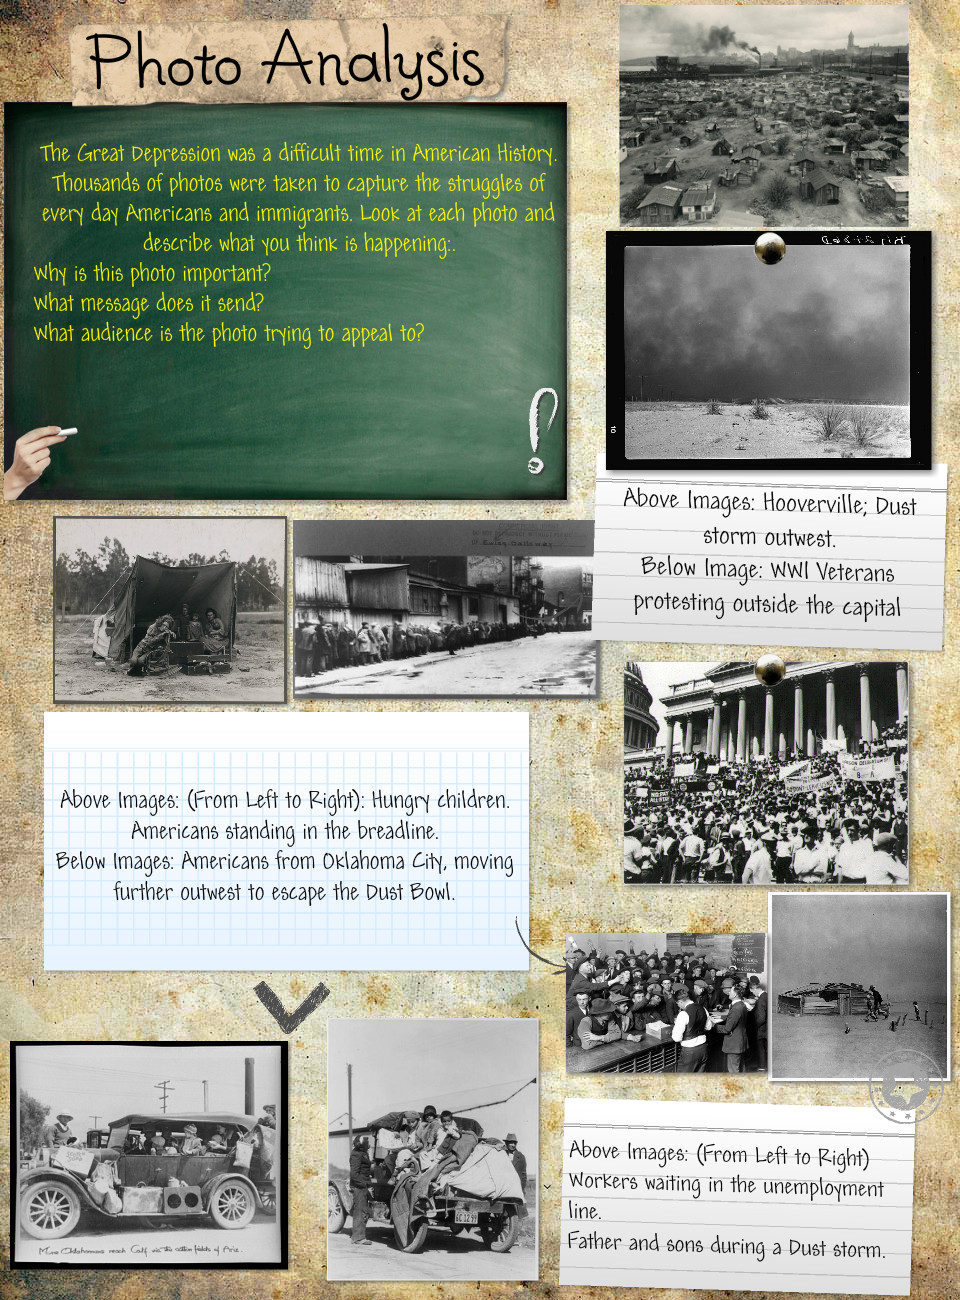 Great Depression Photo Analysis